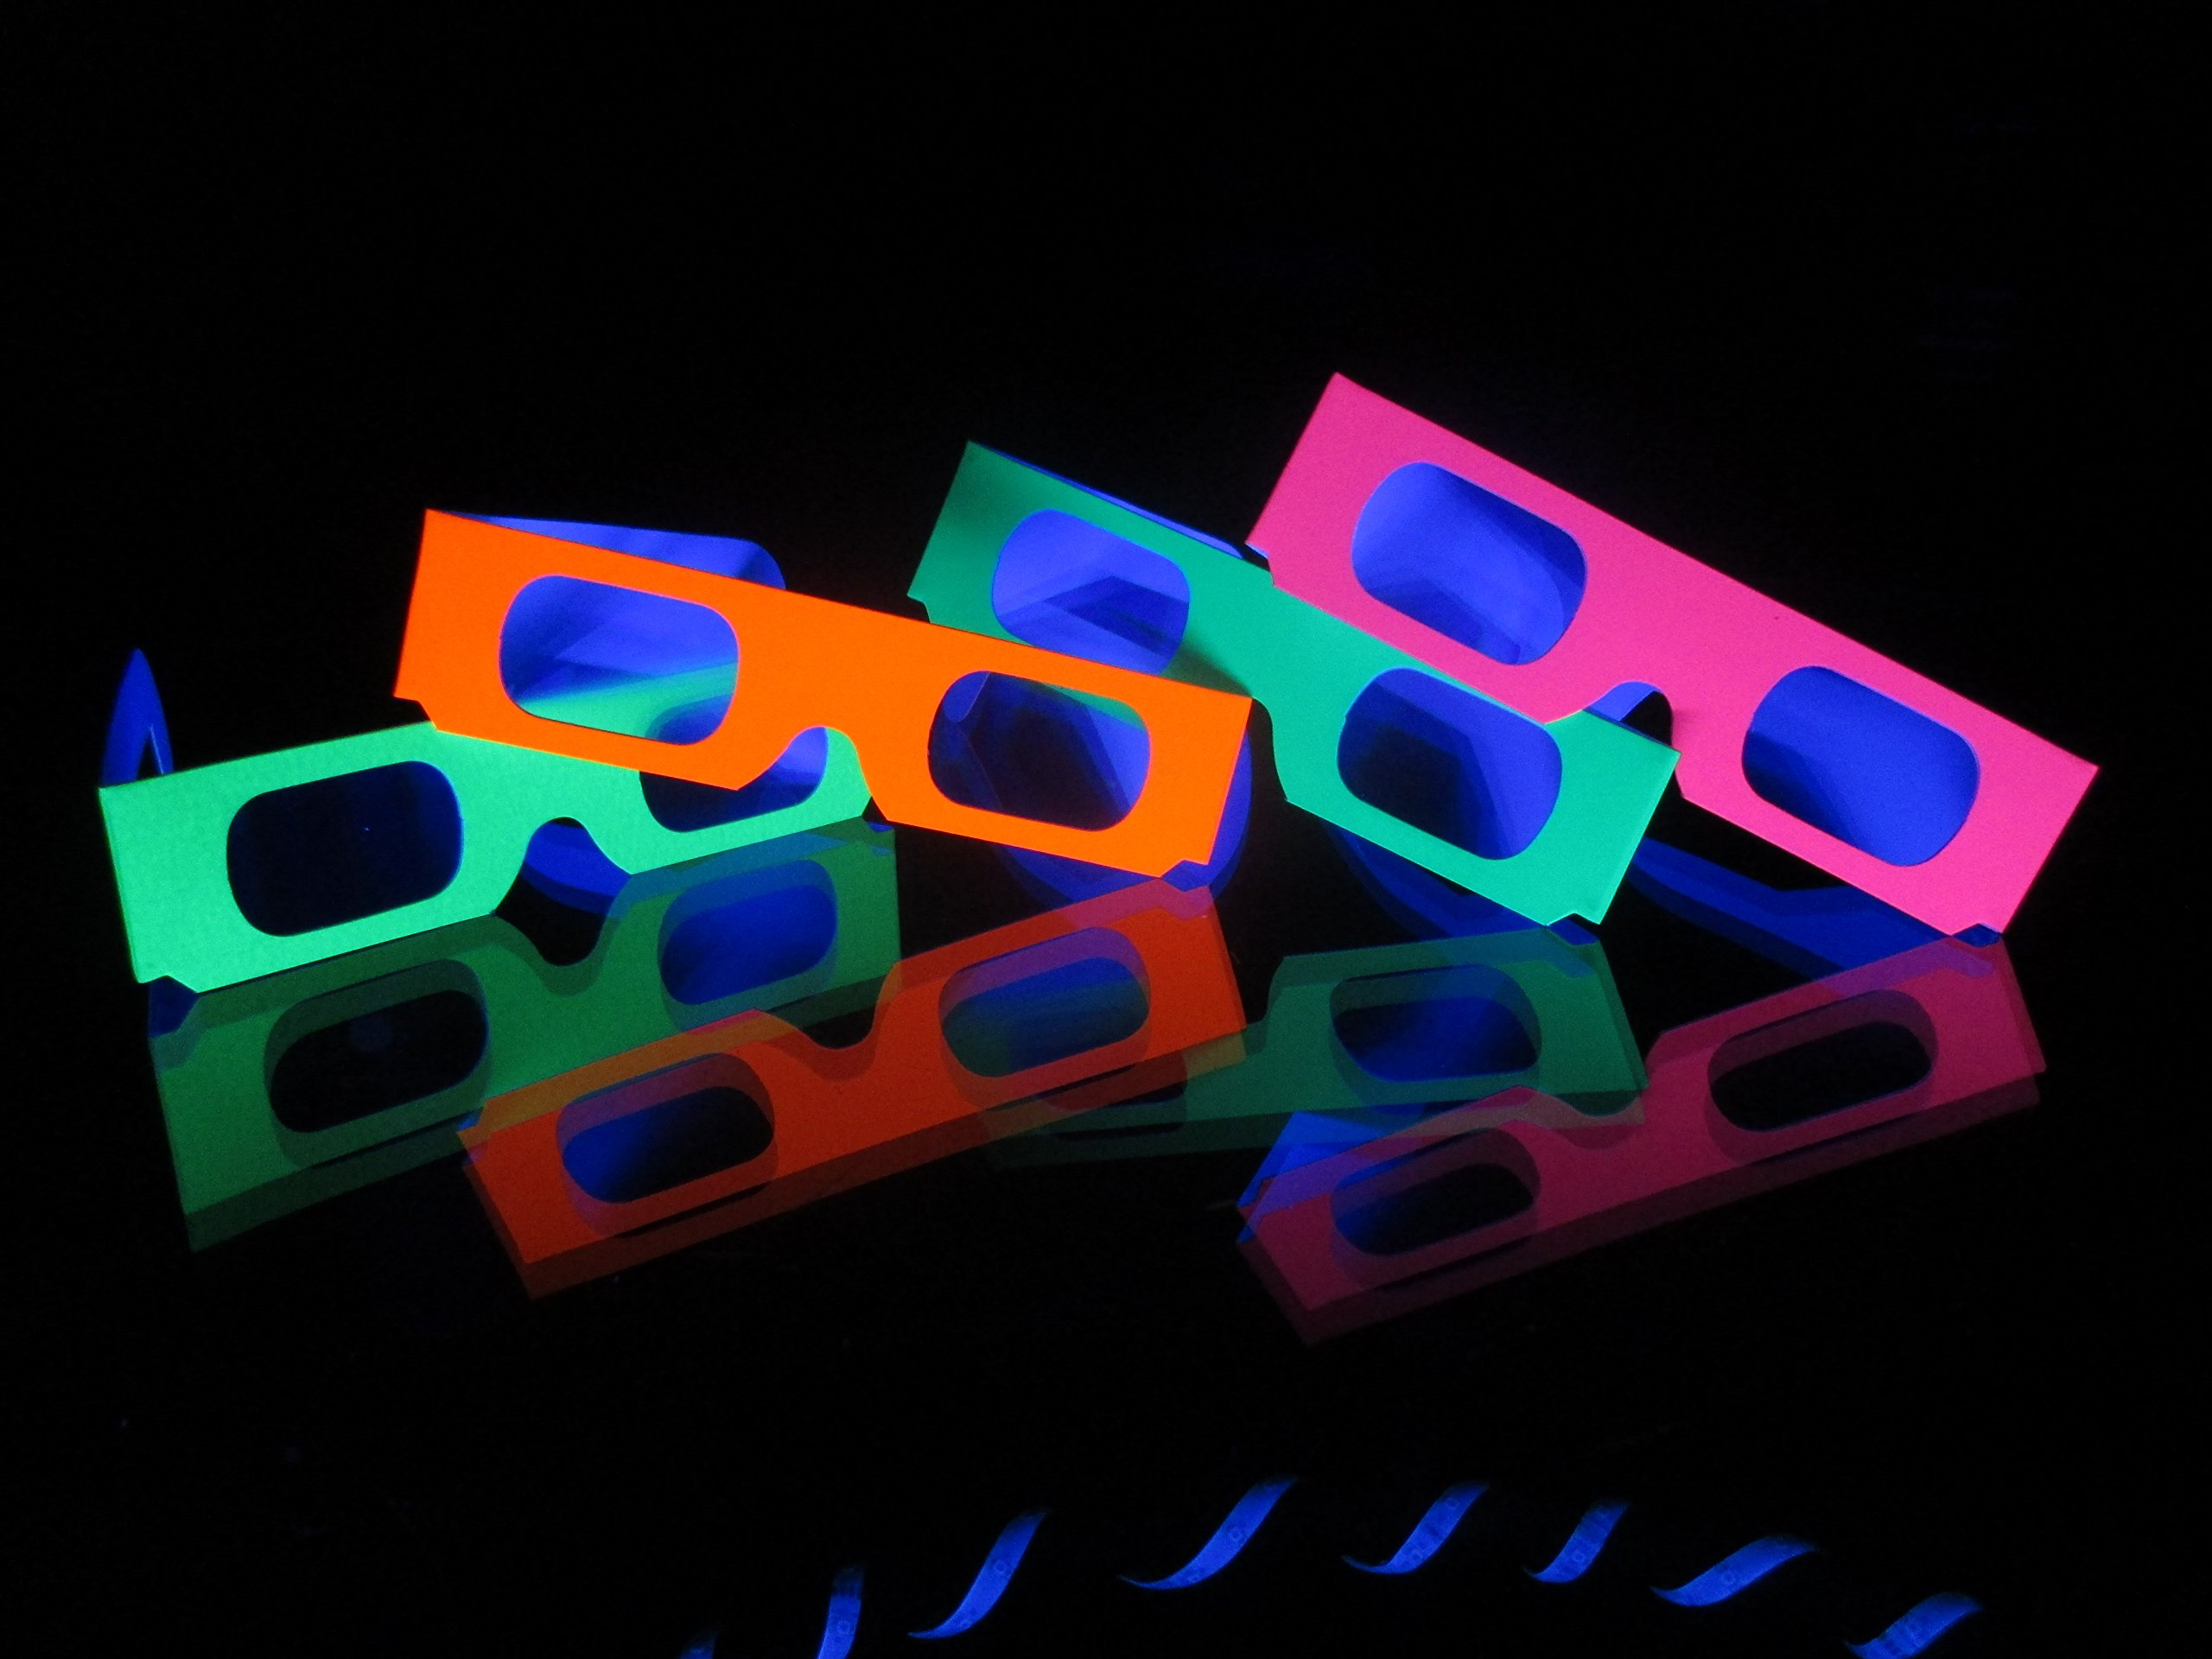 Fireworks Glasses - 200 Pair - For Laser Shows, Raves, Holiday Lights